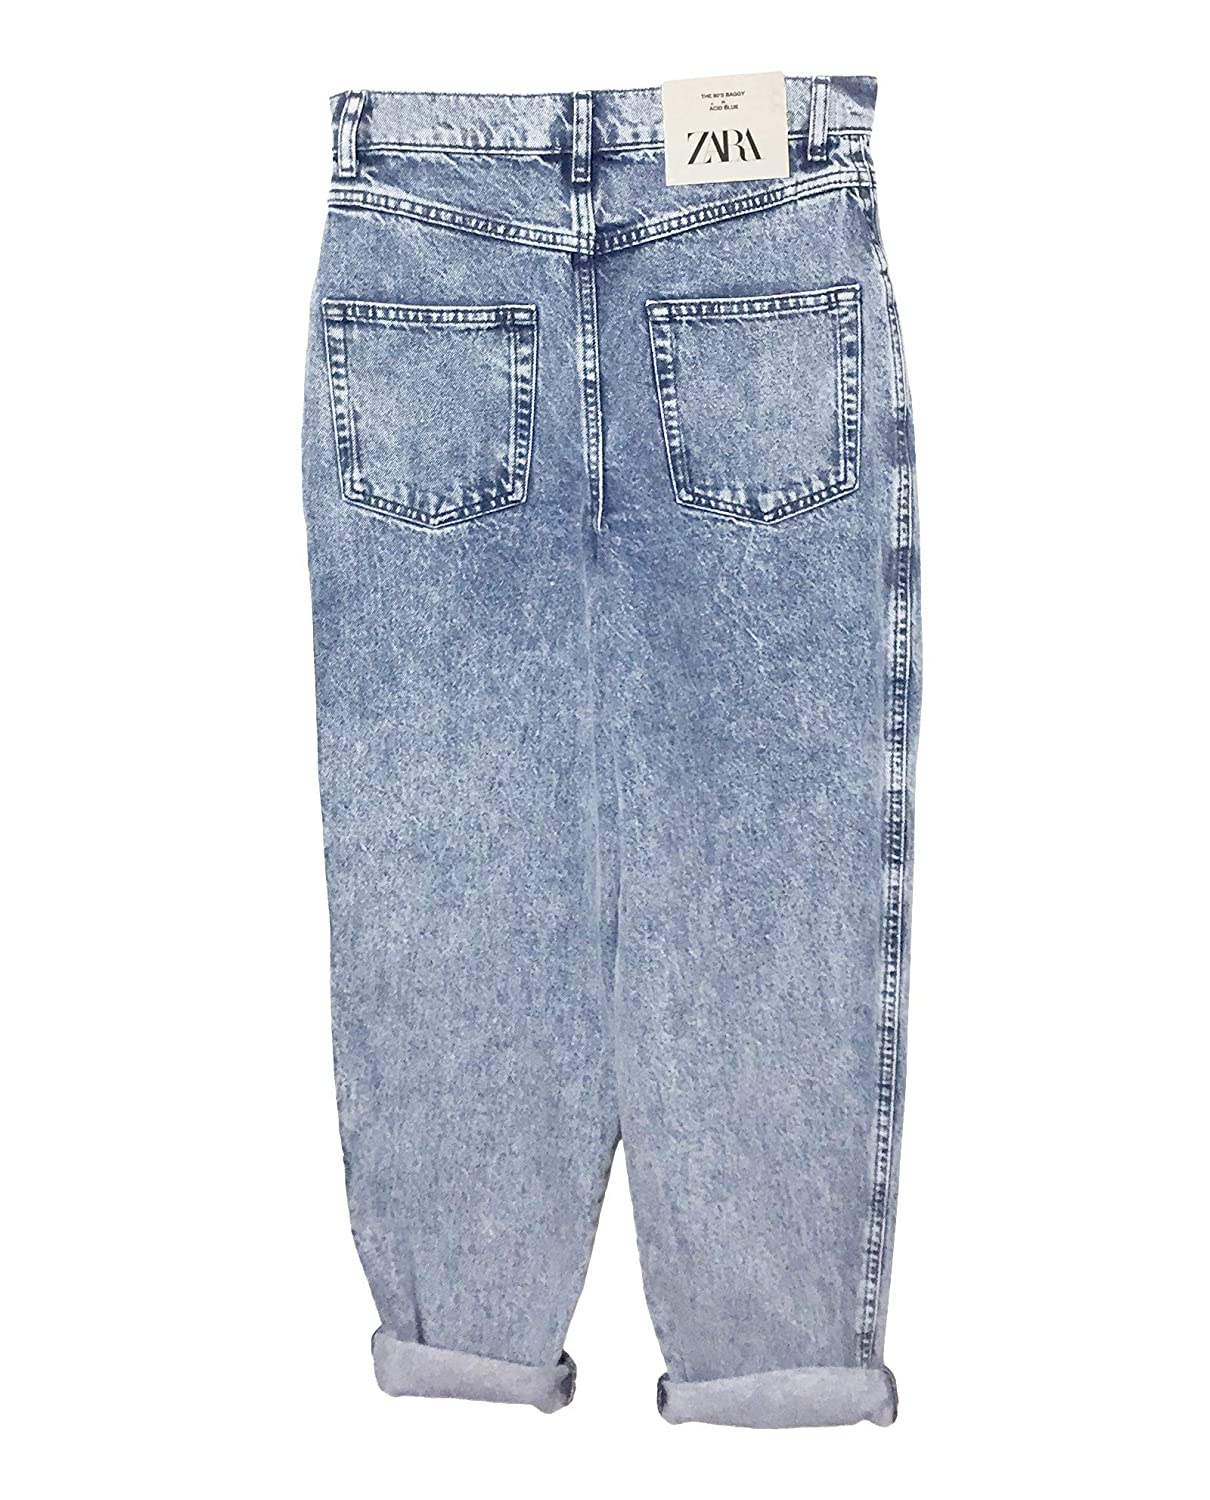 look good shoes sale the cheapest hot new products Zara Women Zw Premium ?80s Baggy Acid Blue Jeans 6840/048 at ...